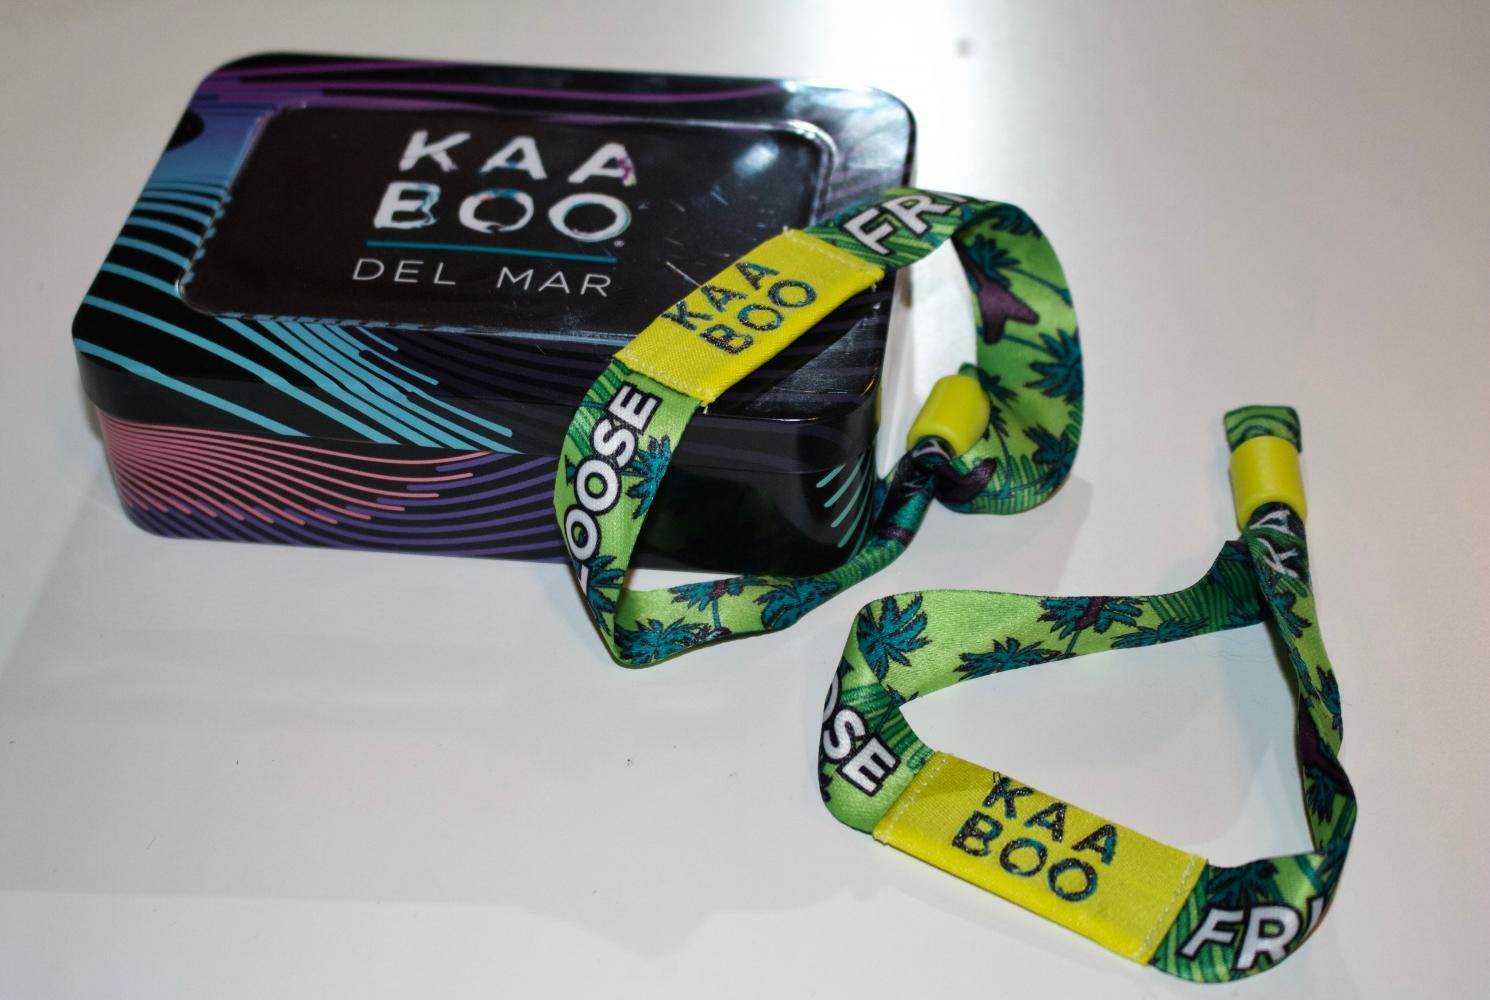 No+paper+ticket+needed%2C+you+will+receive+your+personal+wristband+in+the+mail.+KAABOO+also+introduces+for+the+first+time+cashless+pay+when+you+link+your+festival+wristband+to+your+credit+or+debit+card.+